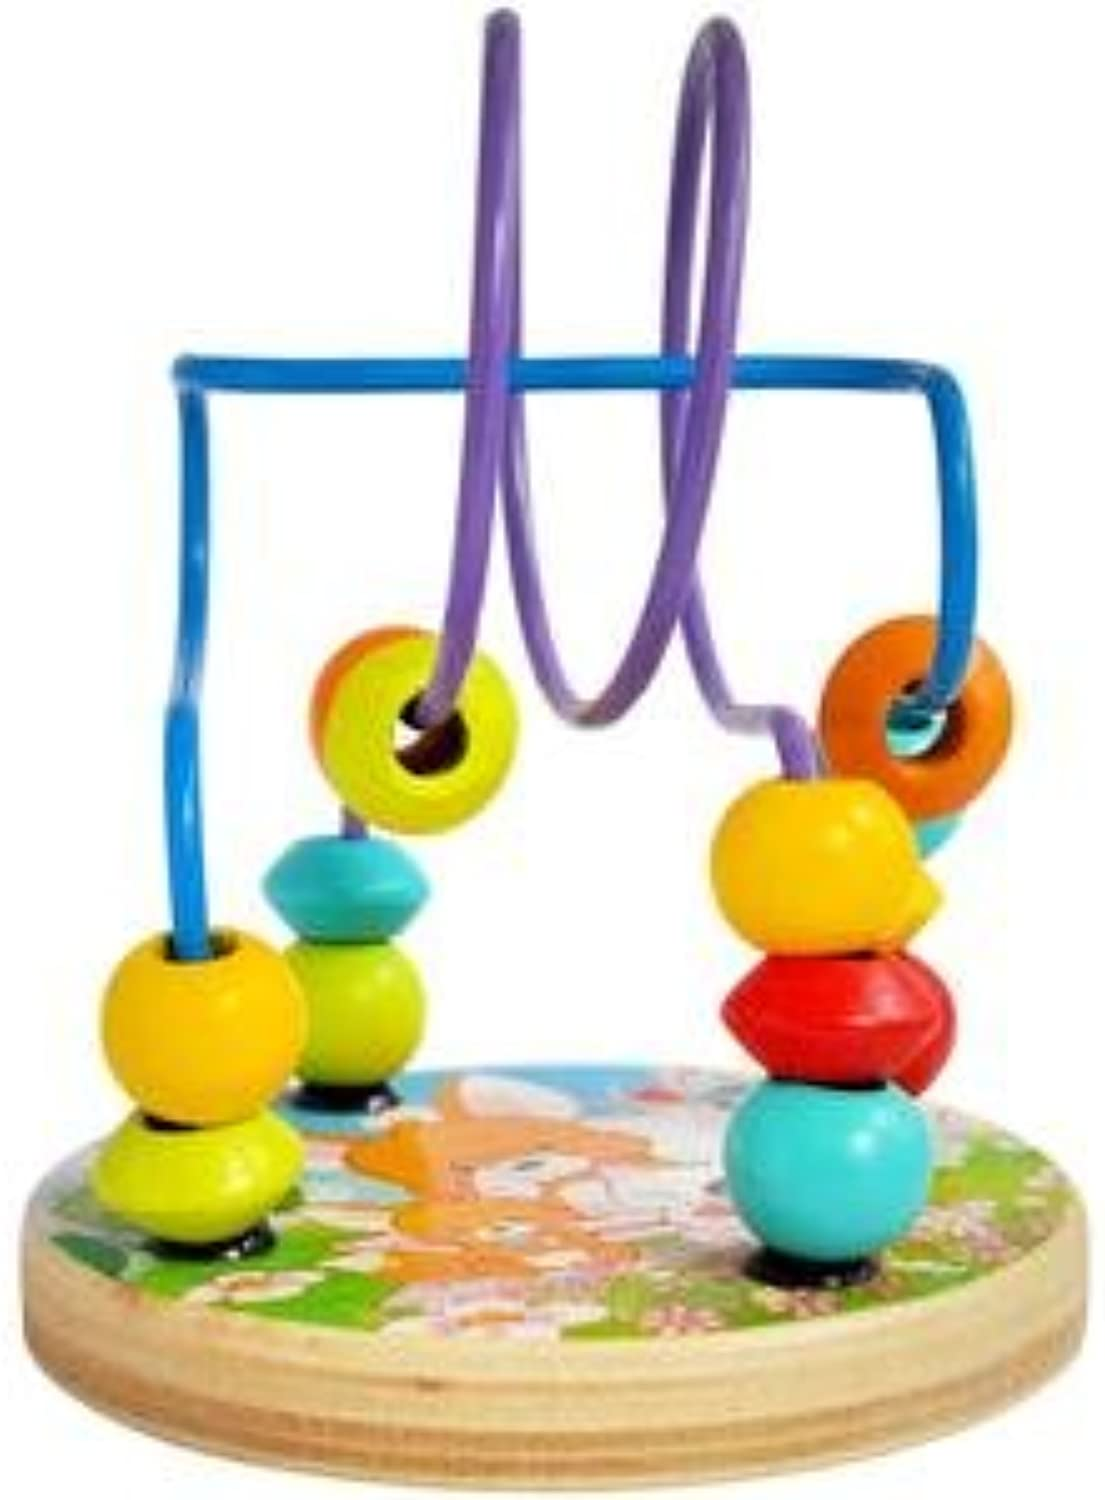 Baby Grow Wooden Beads Maze Puzzle Kids Game Roller Coaster (D1)